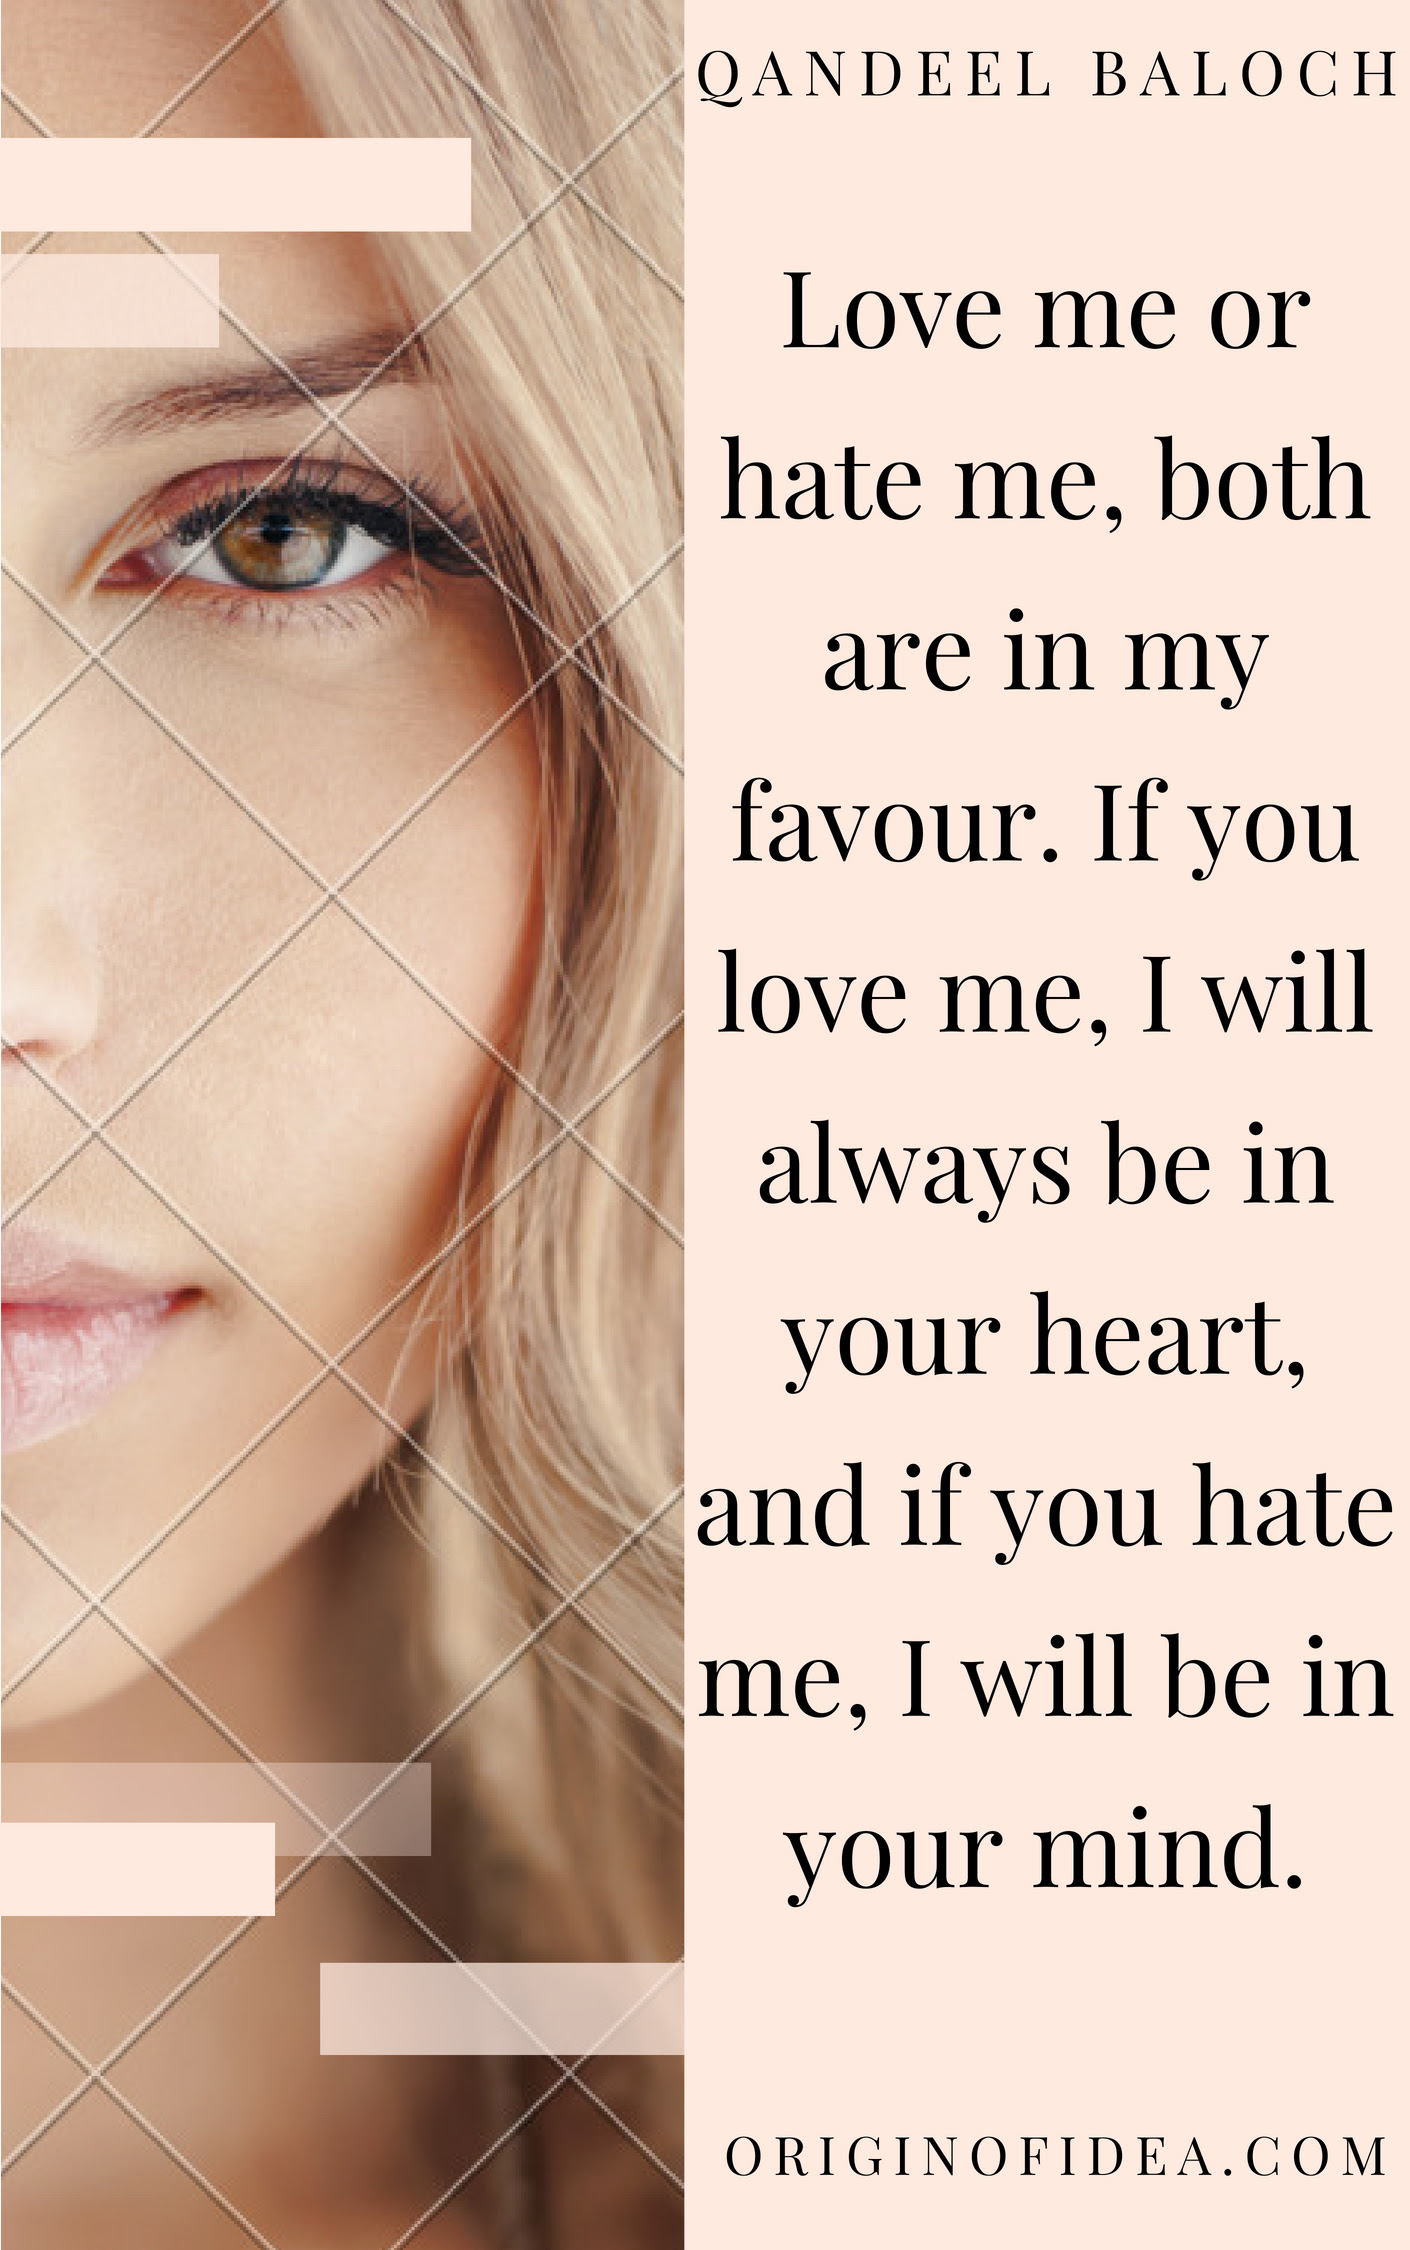 Love Me Or Hate Me Both Are In My Favour If You Love Me I Will